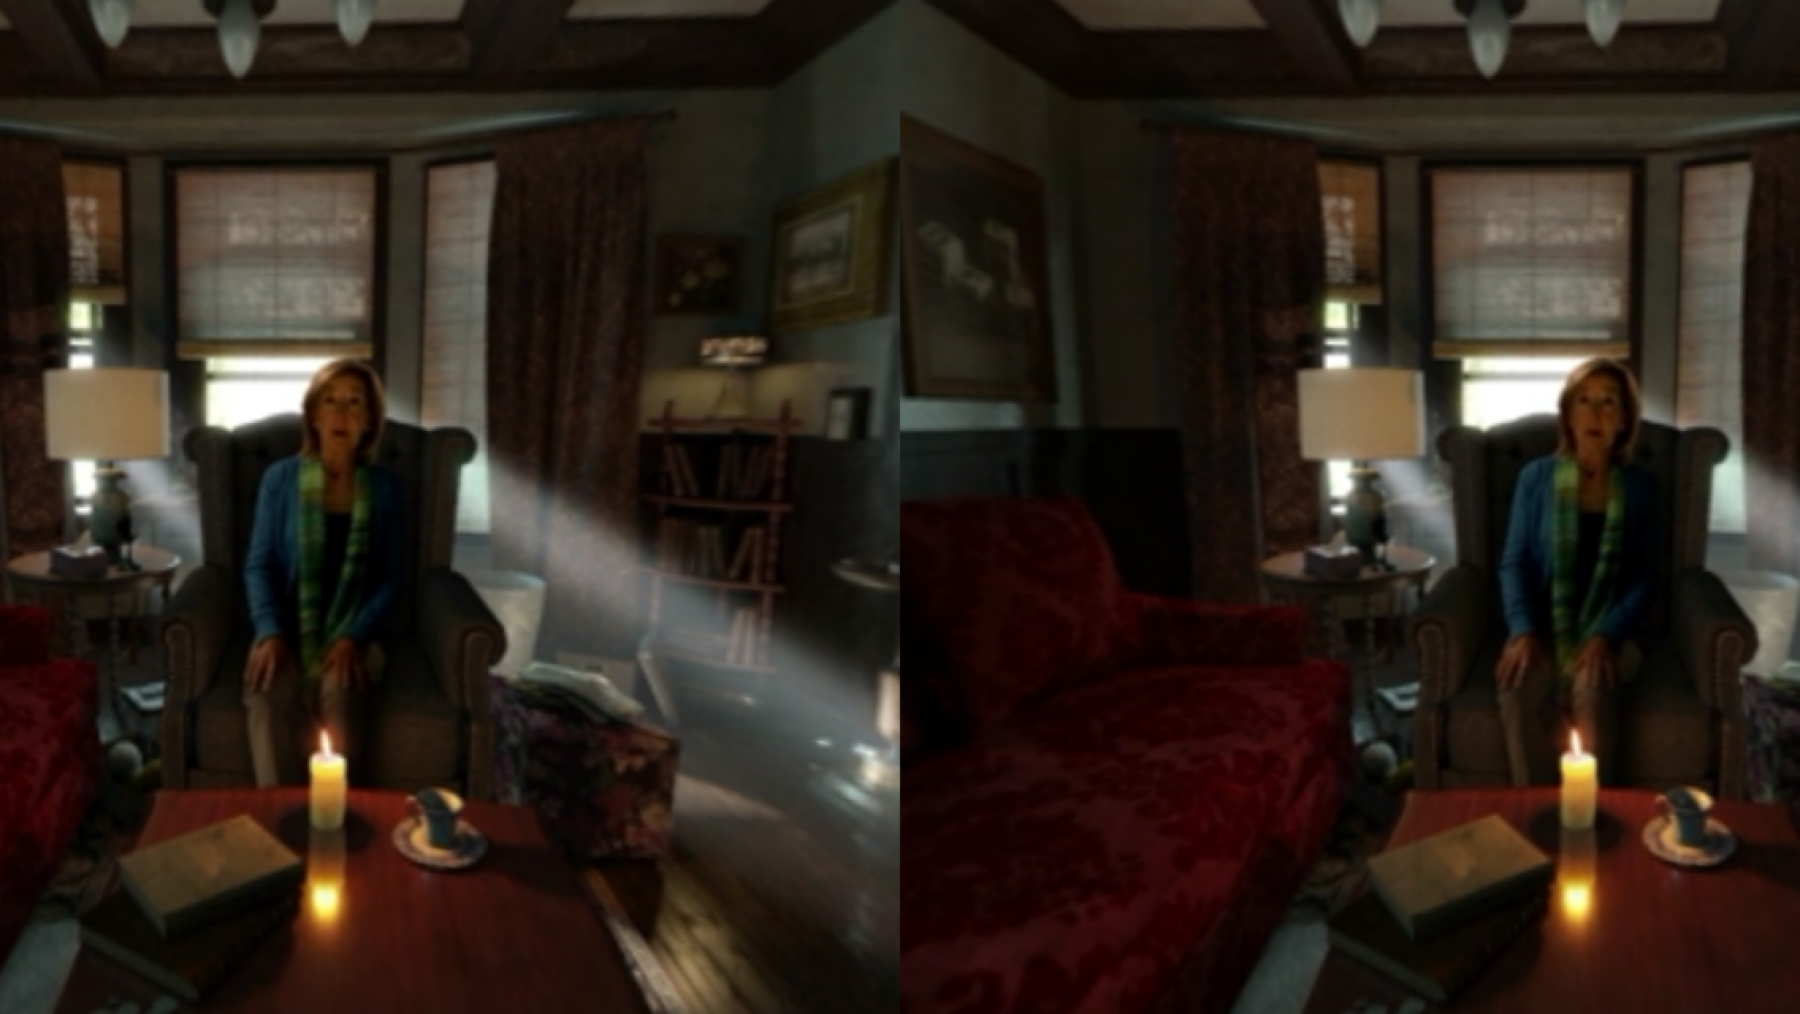 Woman sitting in chair during Insidious VR virtual game